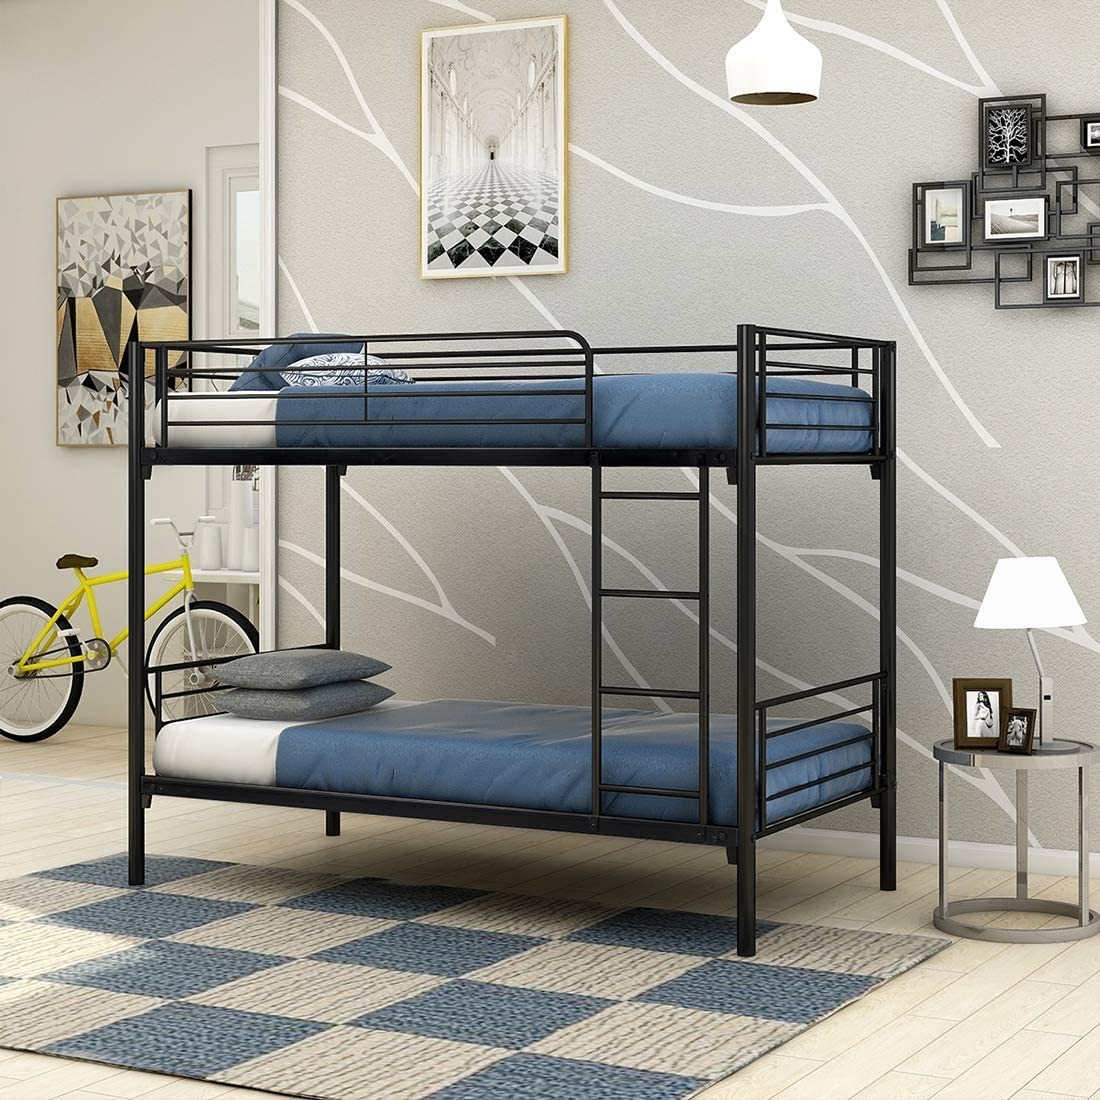 JURMERRY Bunk Bed Metal Frame Twin Over Twin with Slat & Ladder Hevay Duty Steel Bed Frame( Black)